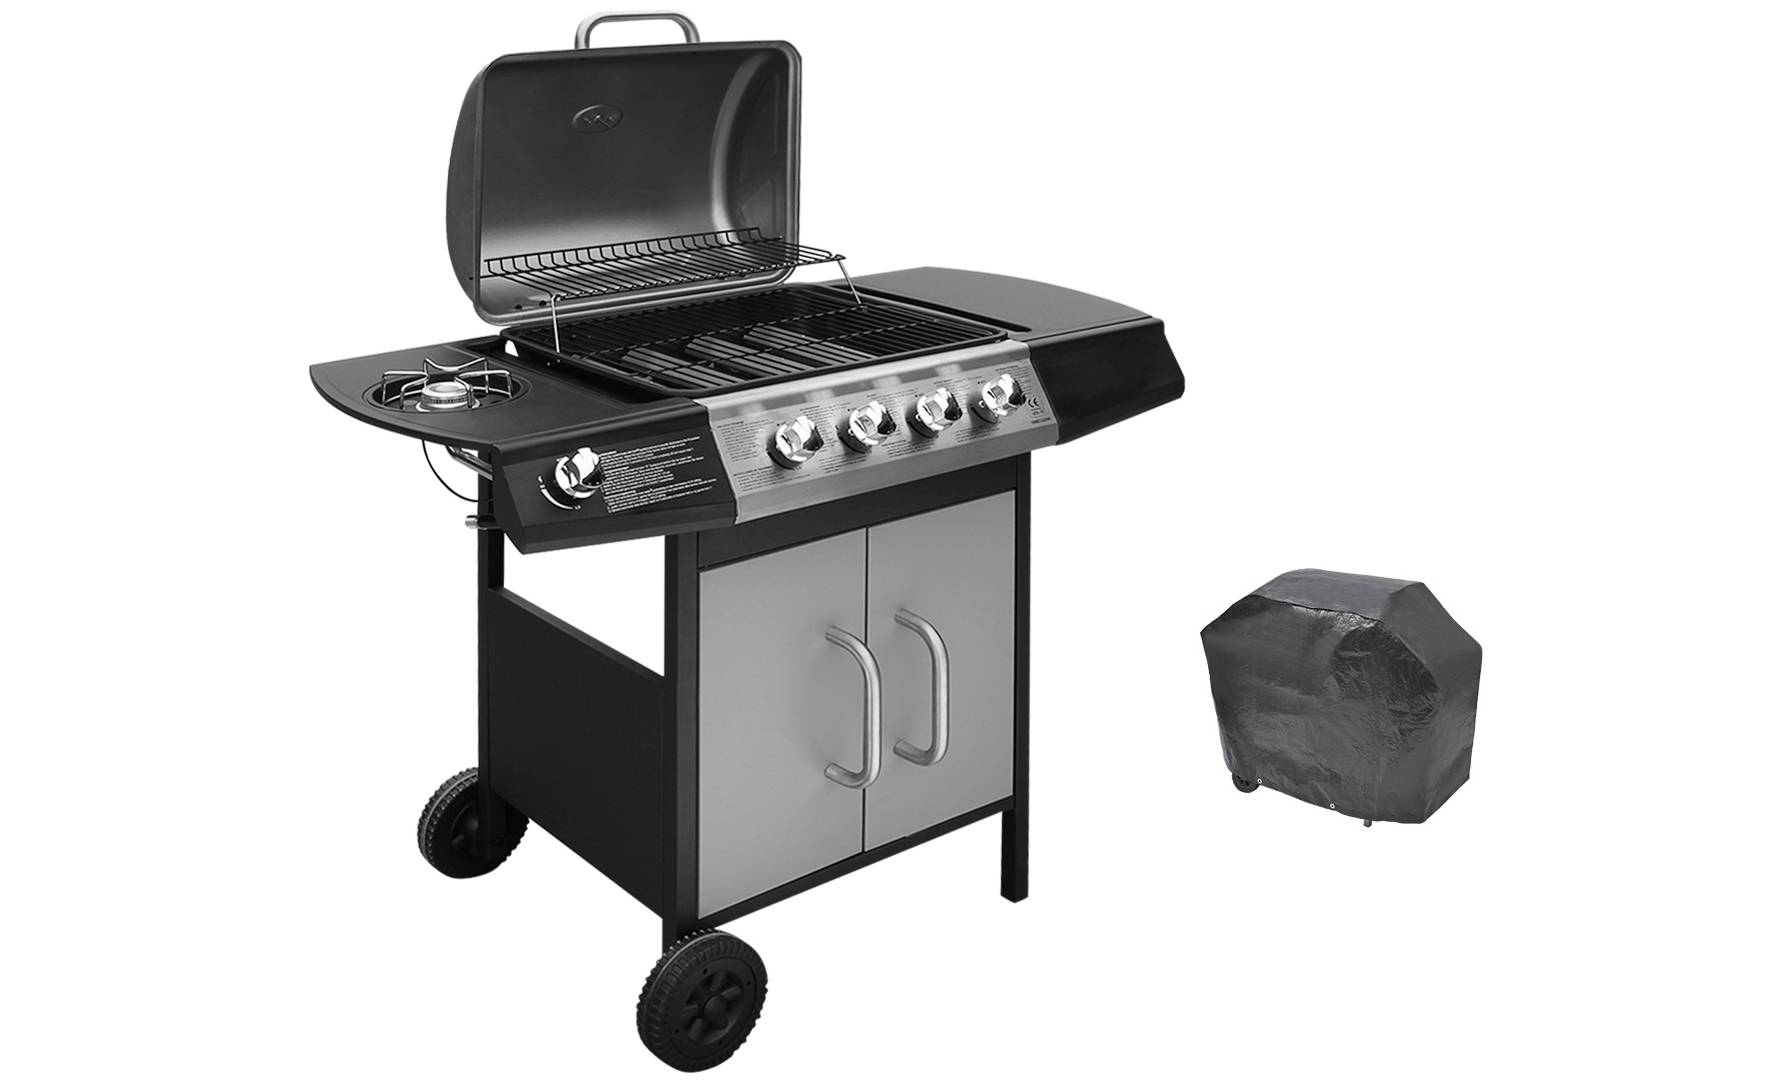 VidaXL Gas Barbecue Four-in-One Grill Burner - Black/Silver